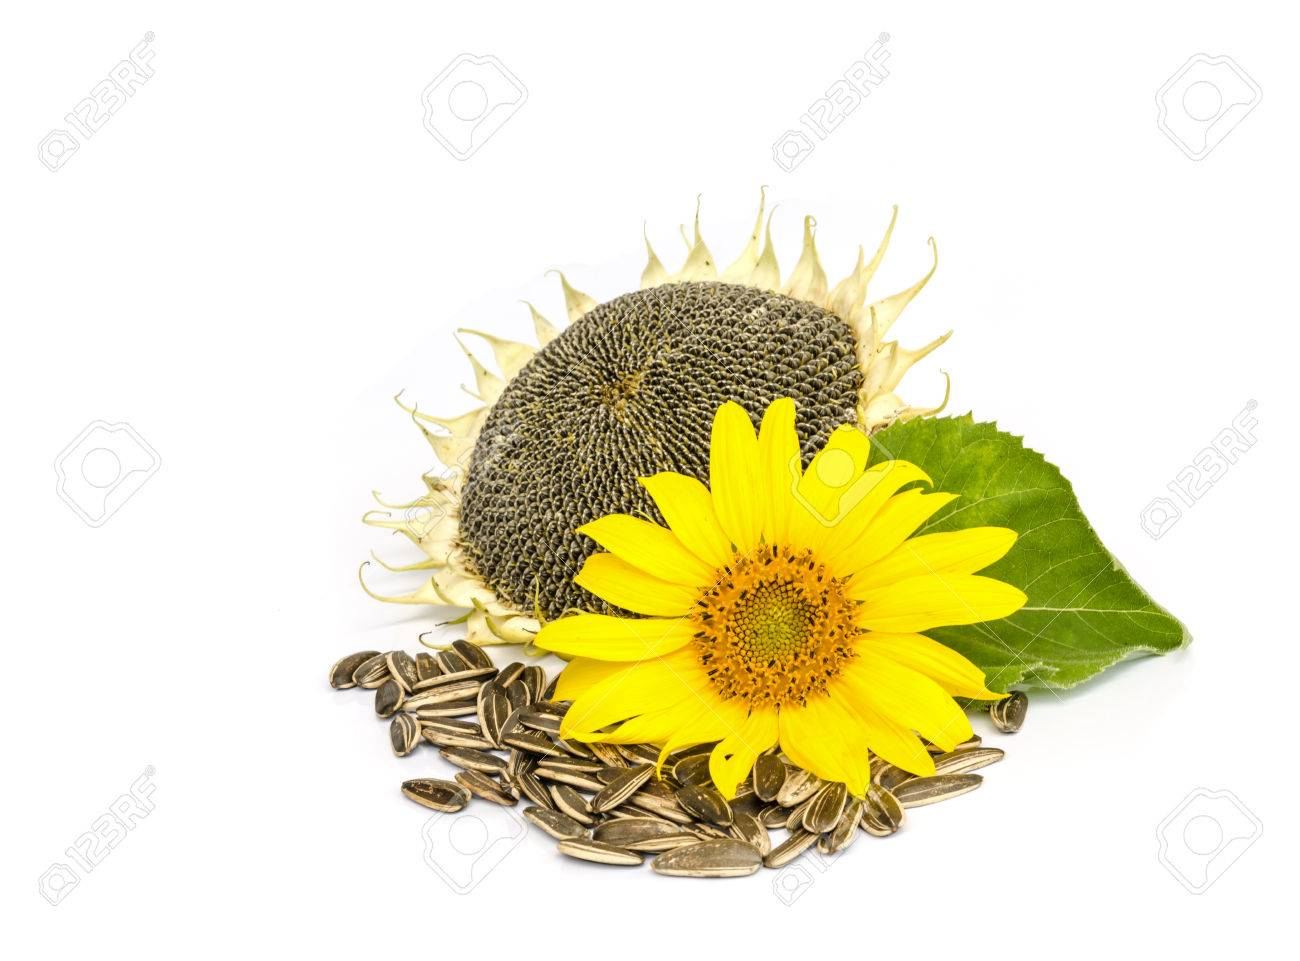 sunflower with seed isolated on white background. - 41294918